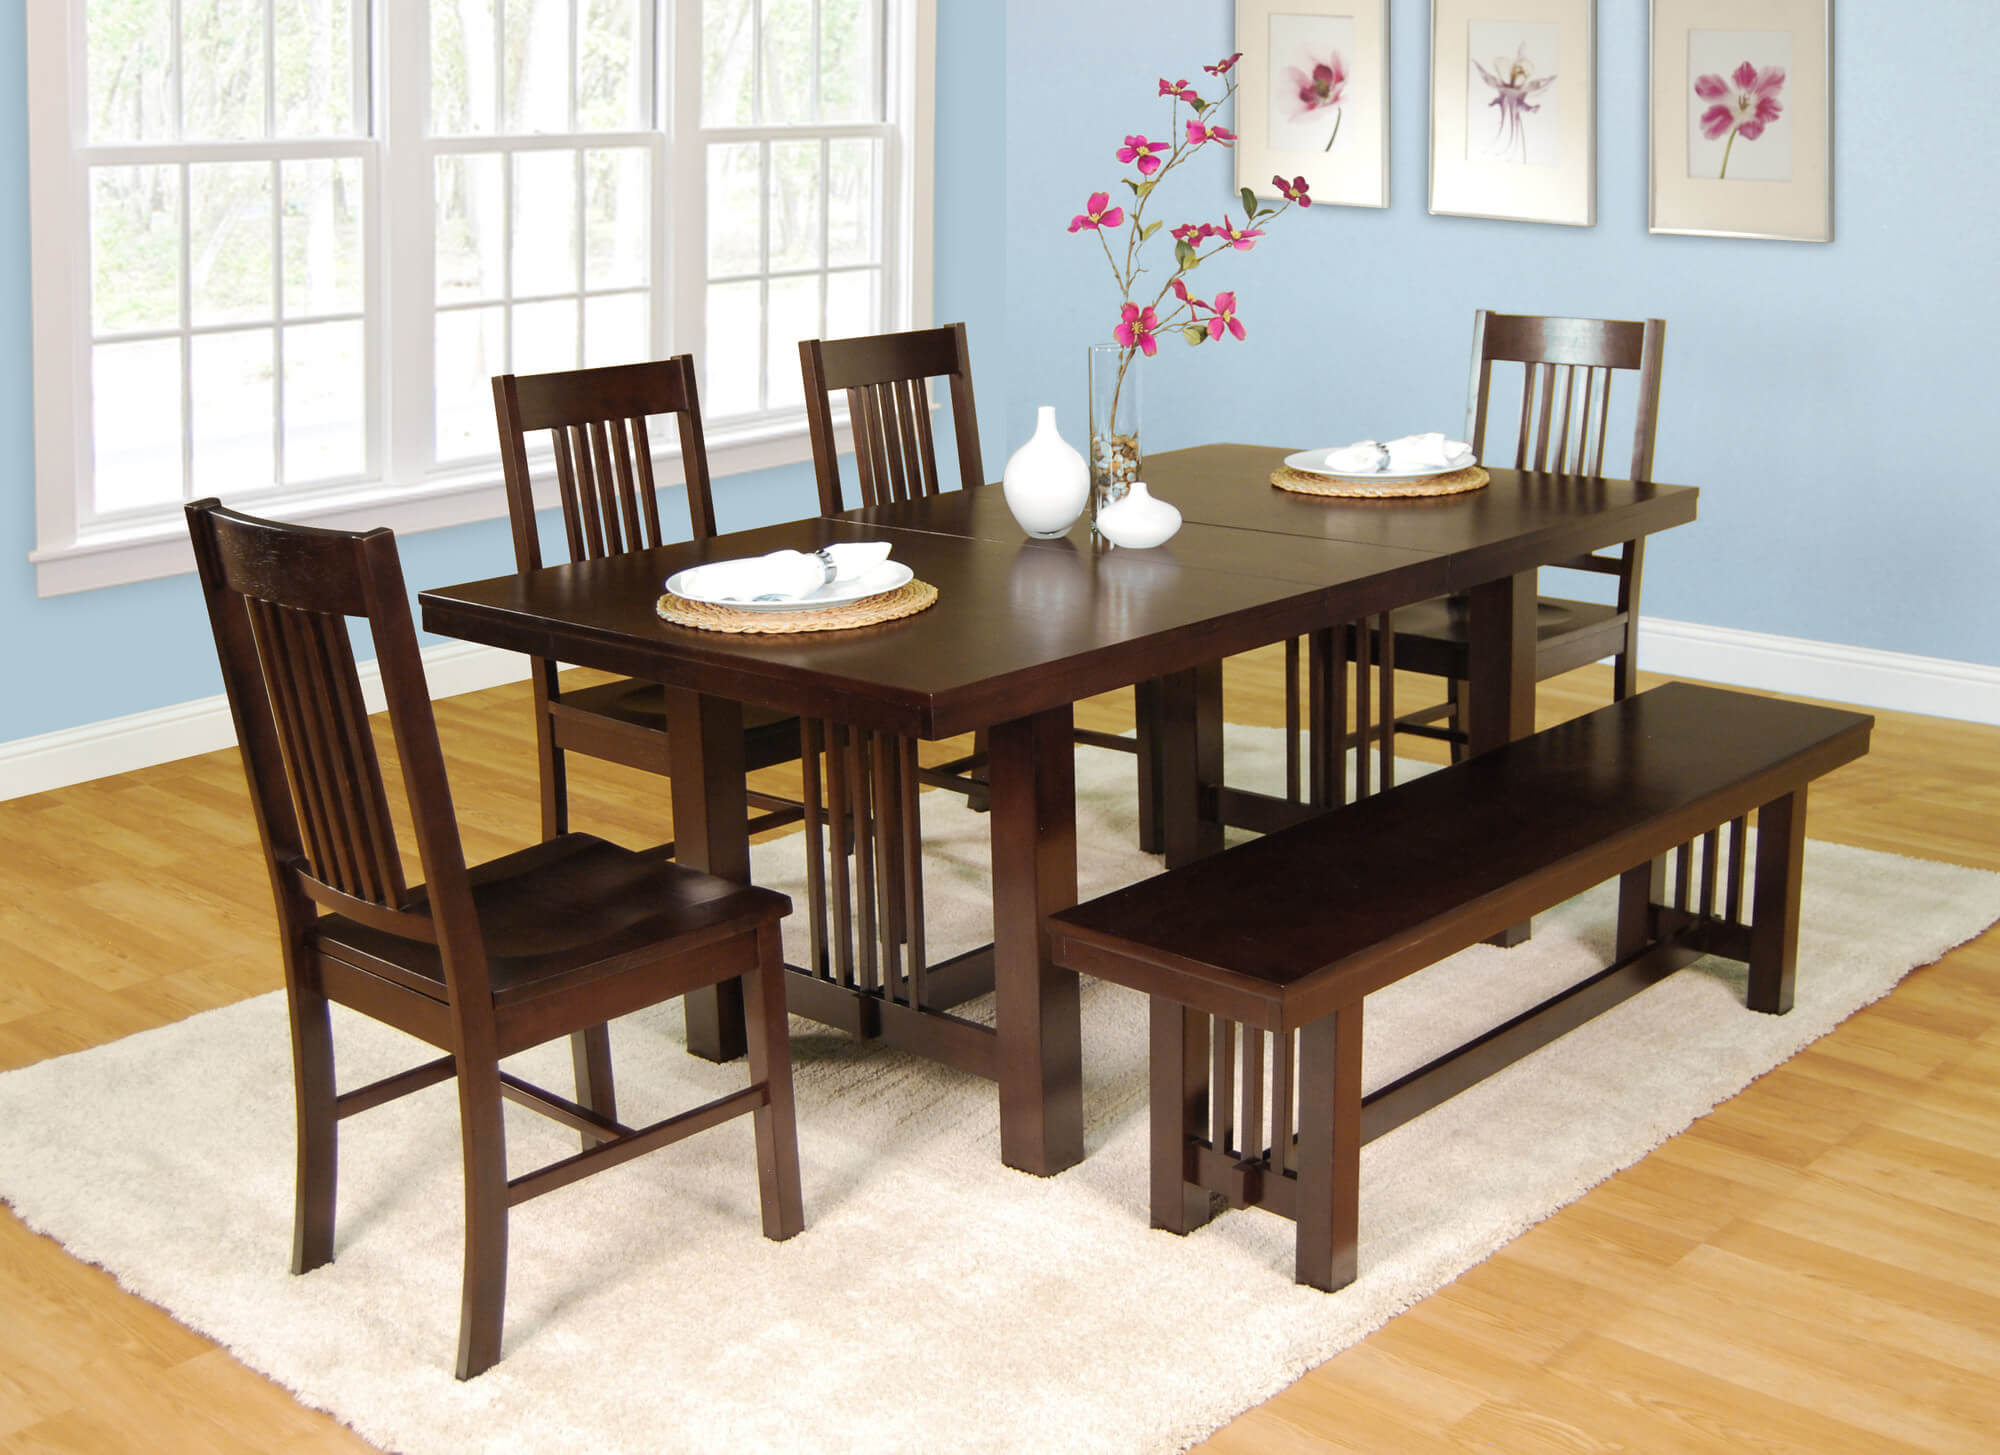 Attractive Hereu0027s A Very Solid Dining Set With Bench. Table Can Be Extended With A  Center